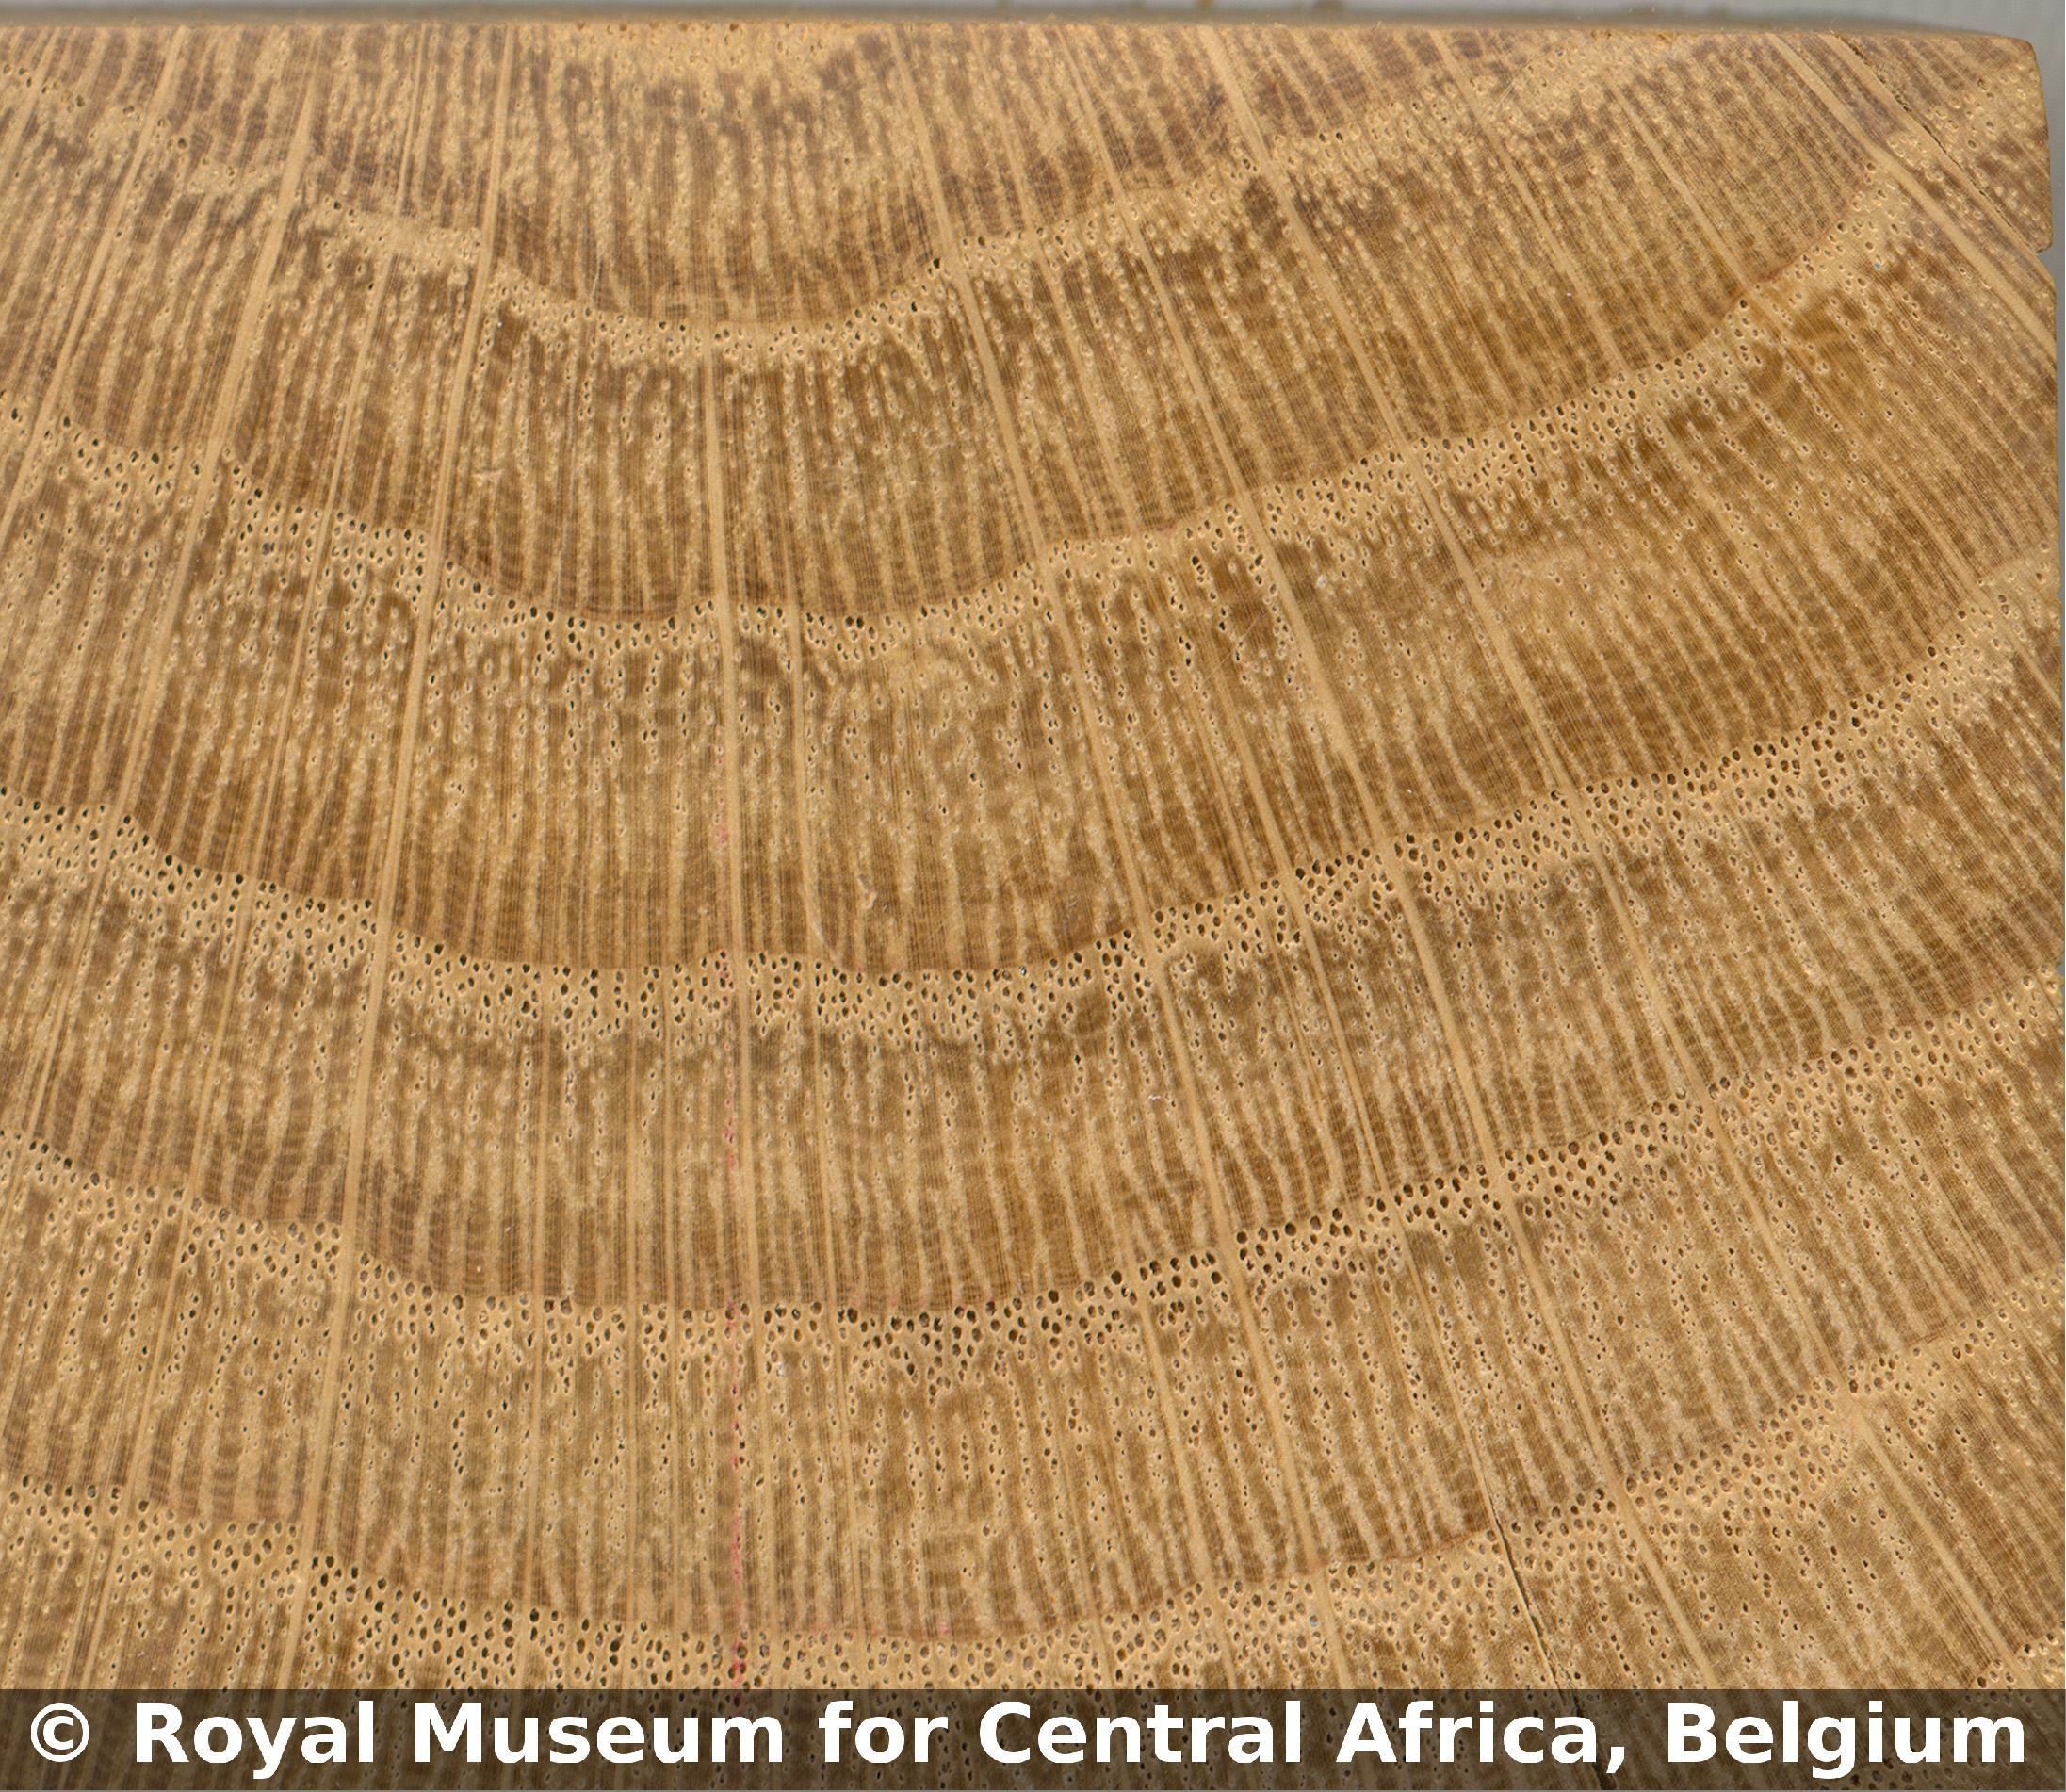 Tervuren Xylarium Wood Database | Royal Museum for Central Africa